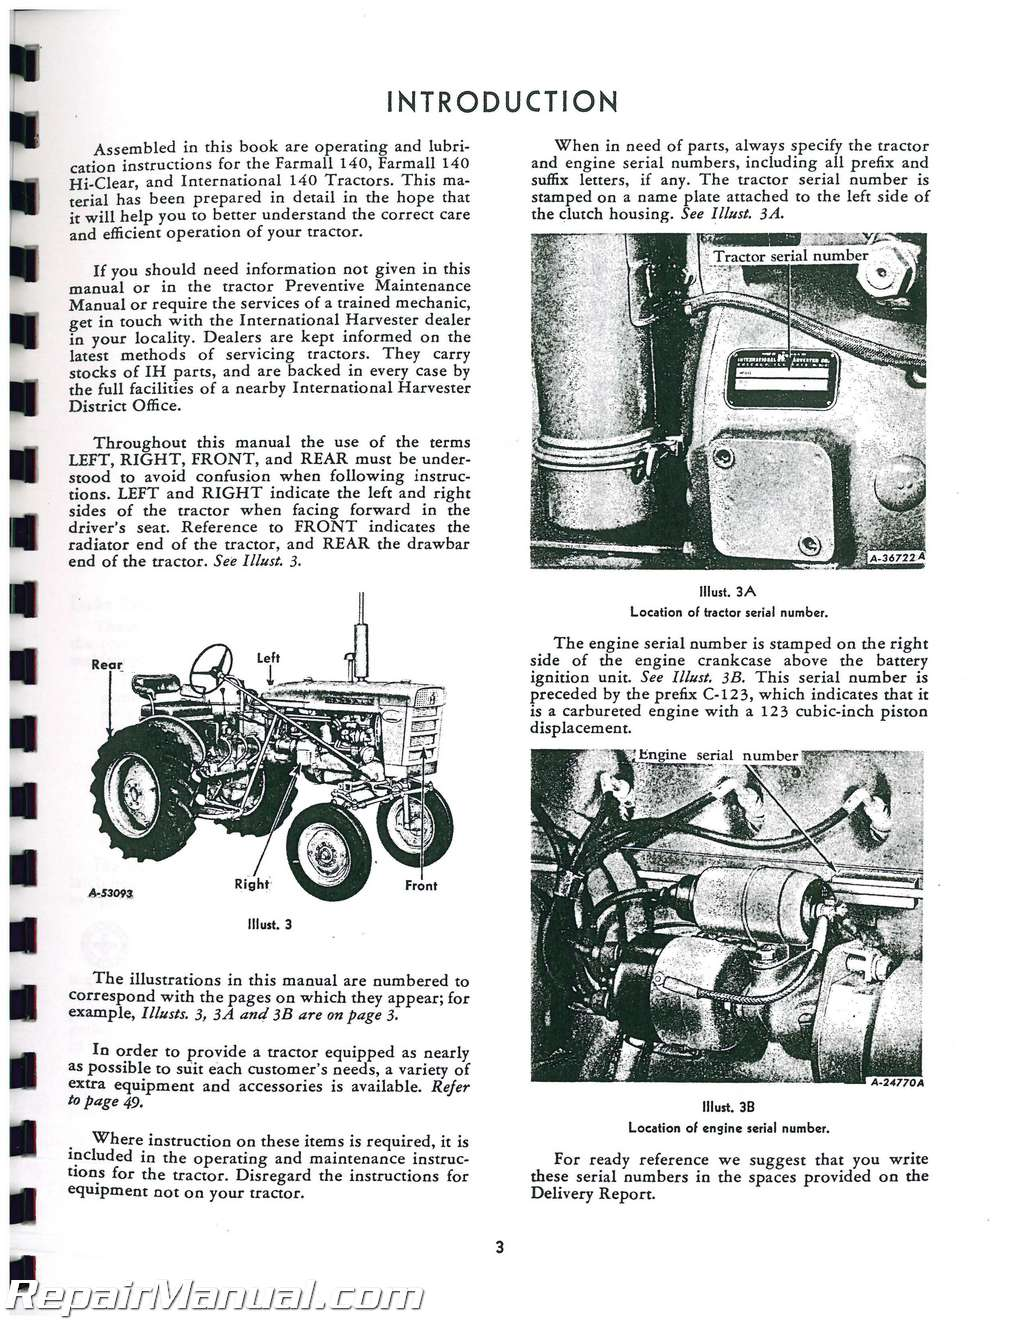 Farmall Tractor Wiring Diagram 340 Schematic 1950 Cub For